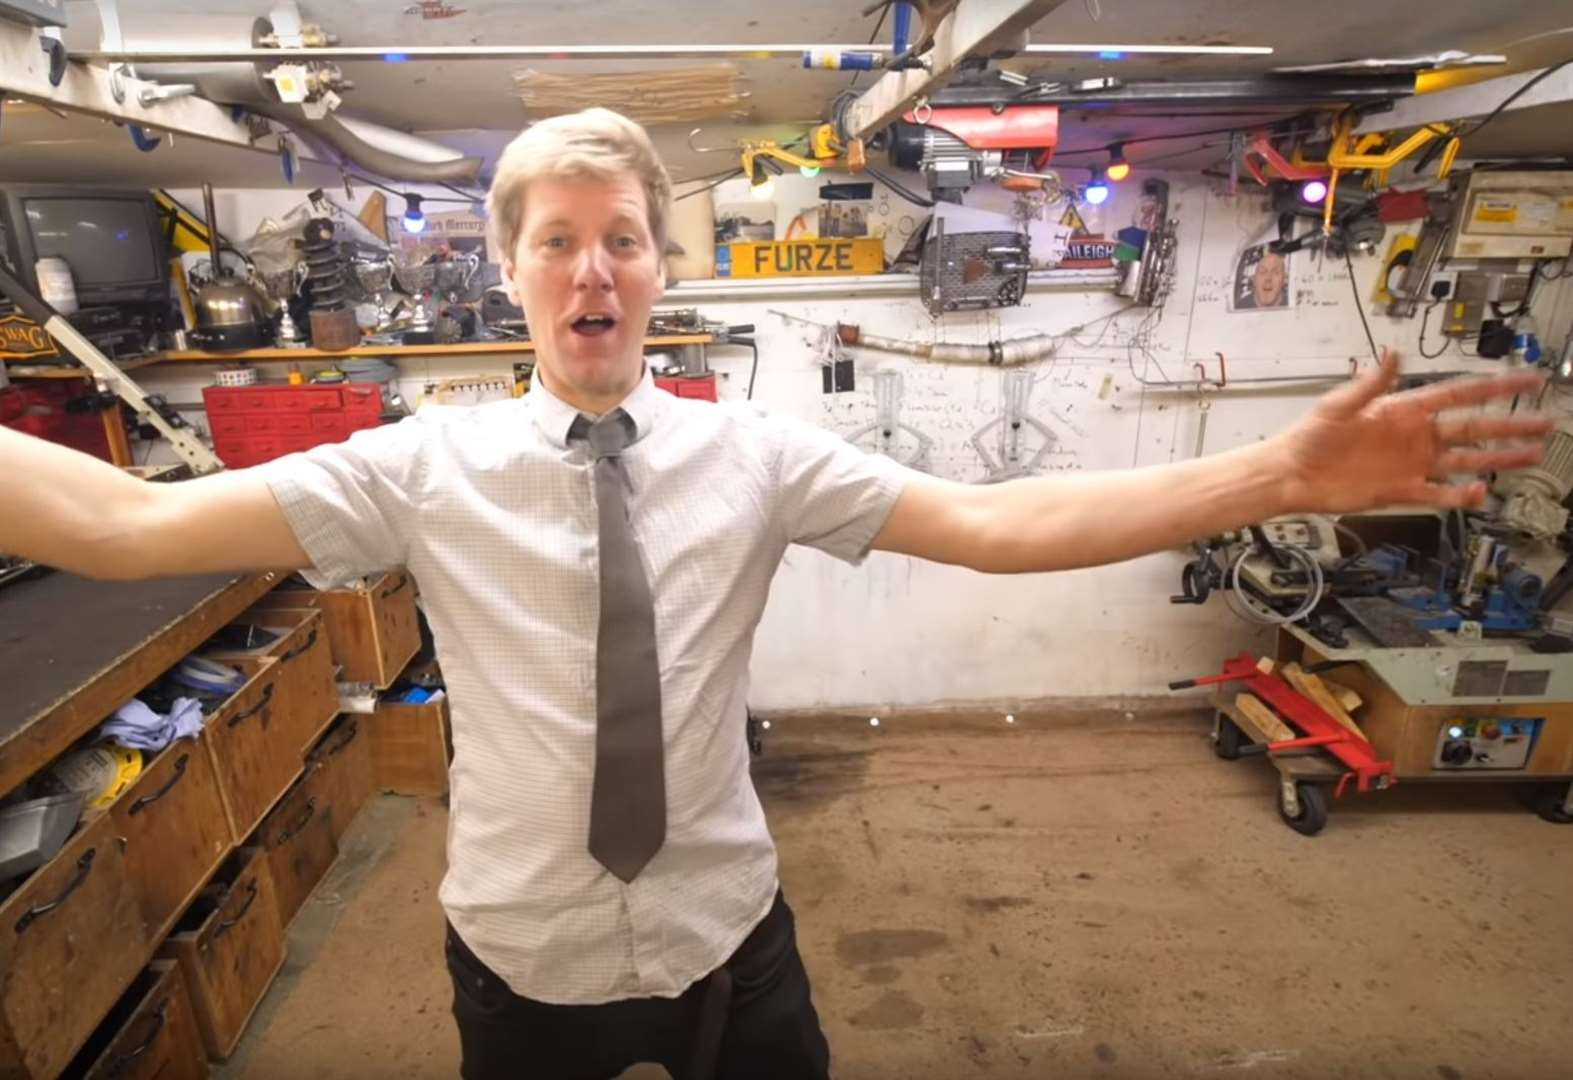 YouTube inventor Colin Furze reaches a billion video views